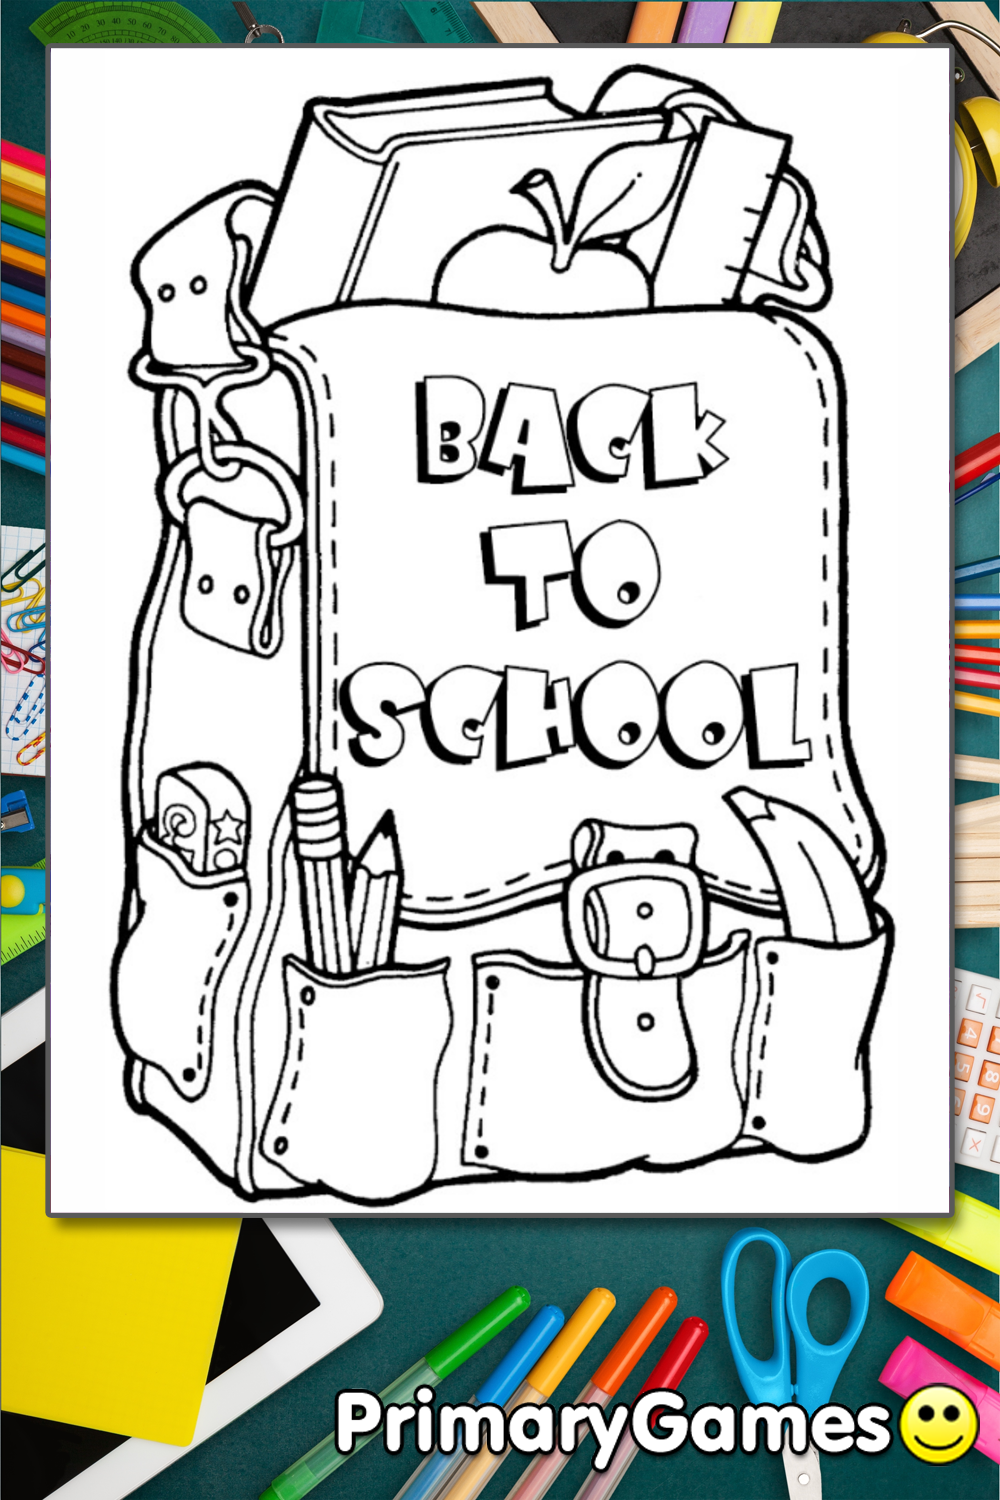 back to school backpack coloring page printable back to school coloring ebook primarygames. Black Bedroom Furniture Sets. Home Design Ideas